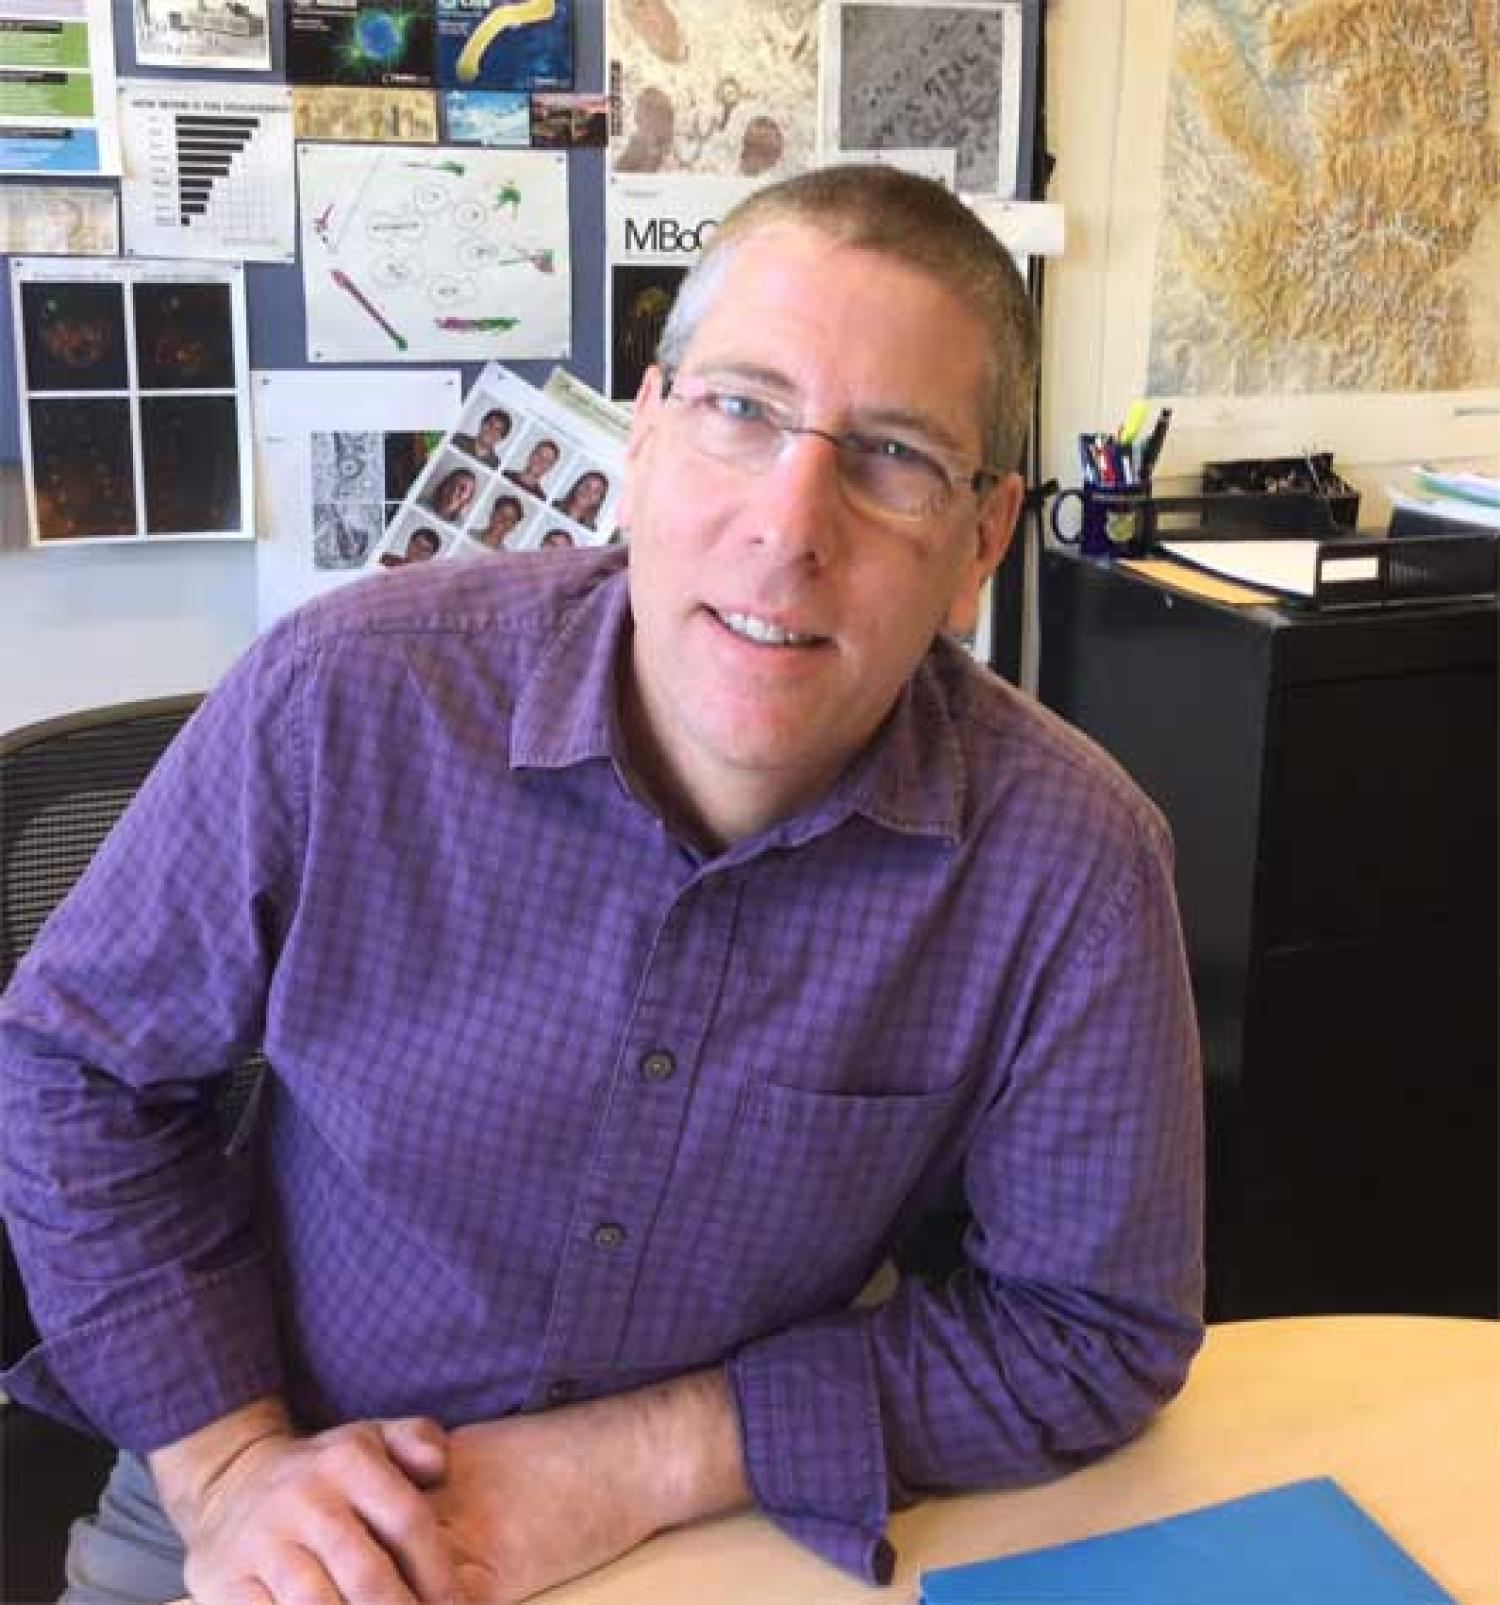 Mark Winey, professor and chair of molecular, cellular and developmental biology, leads an effort to improve the ability of scientists to reproduce results reported in scientific journals. Photo courtesy of Mark Winey.